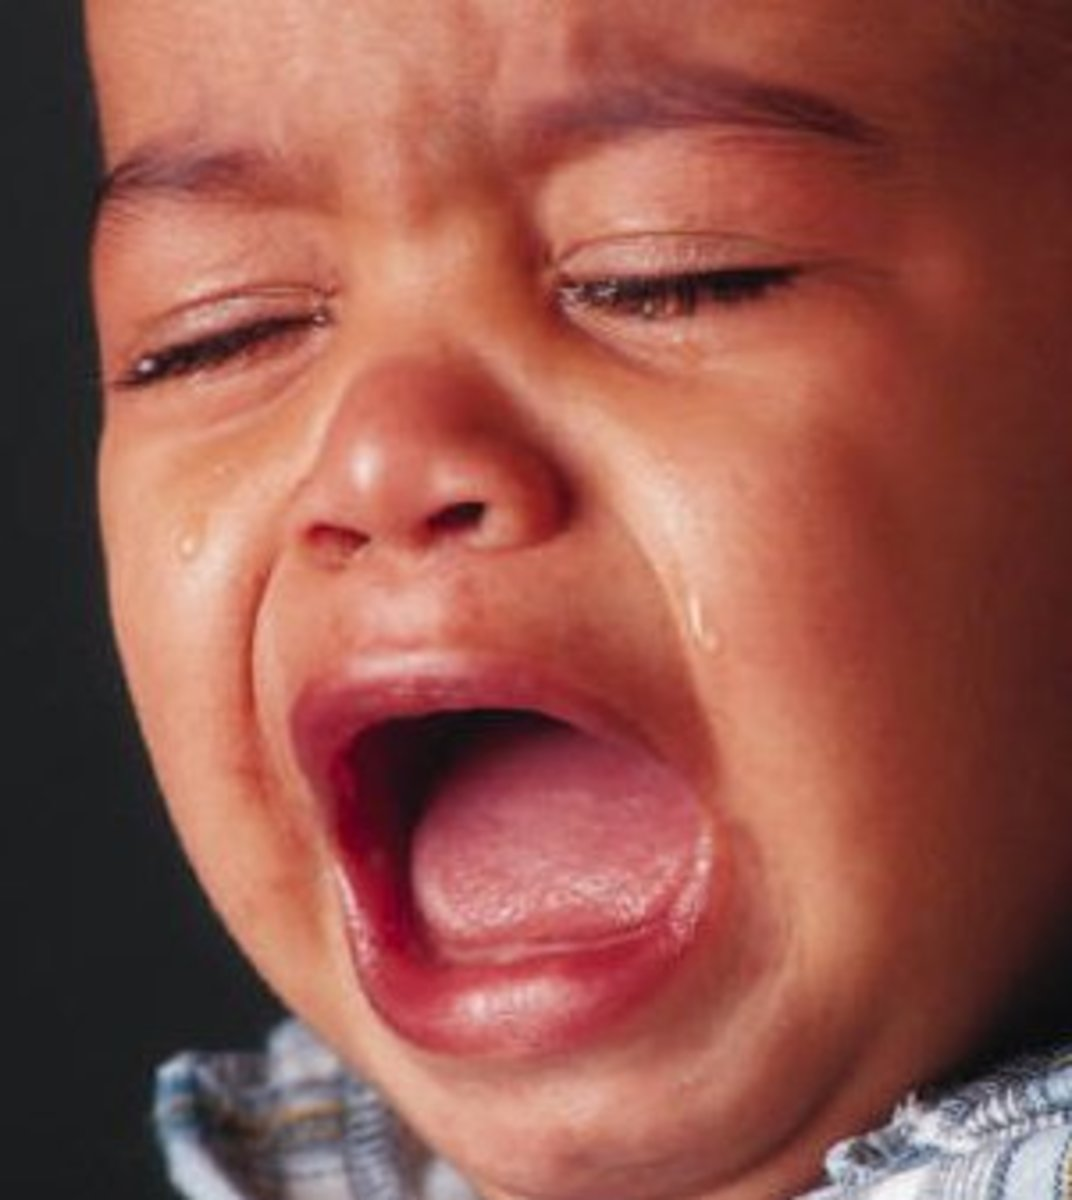 What could be the reason for this baby to cry this much?